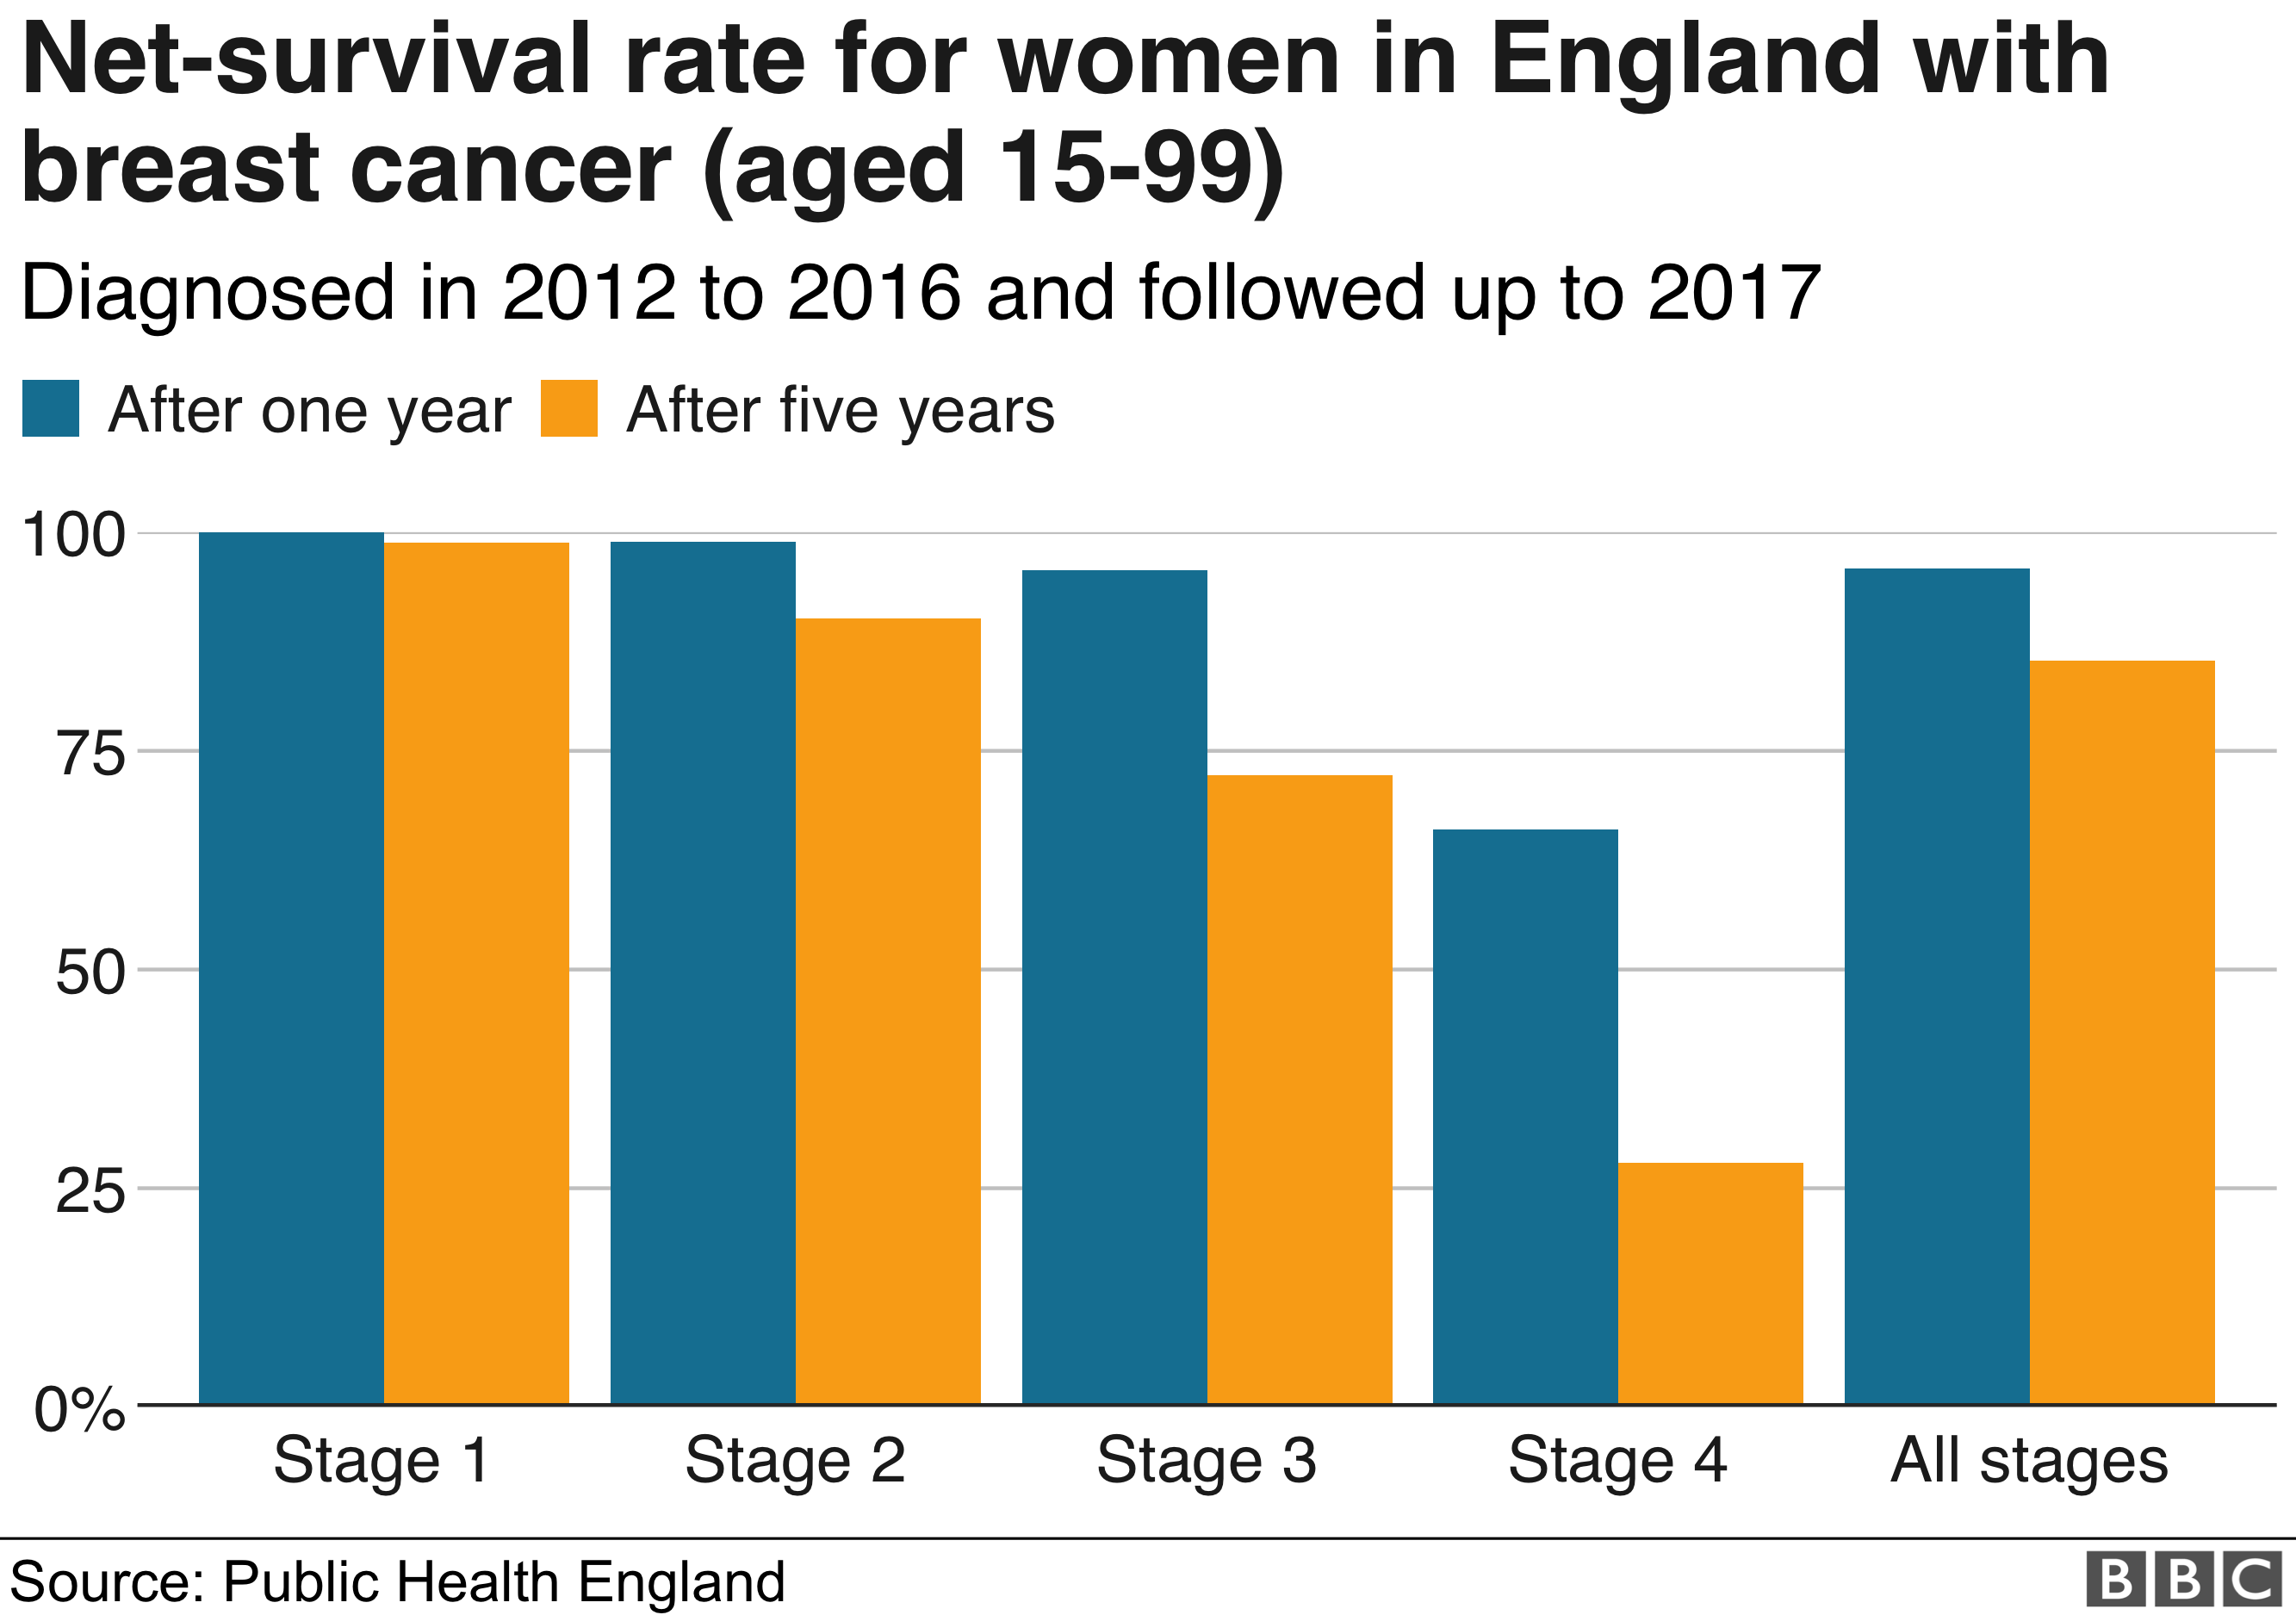 Chart showing the net-survivor rate for women in England diagnosed with breast cancer